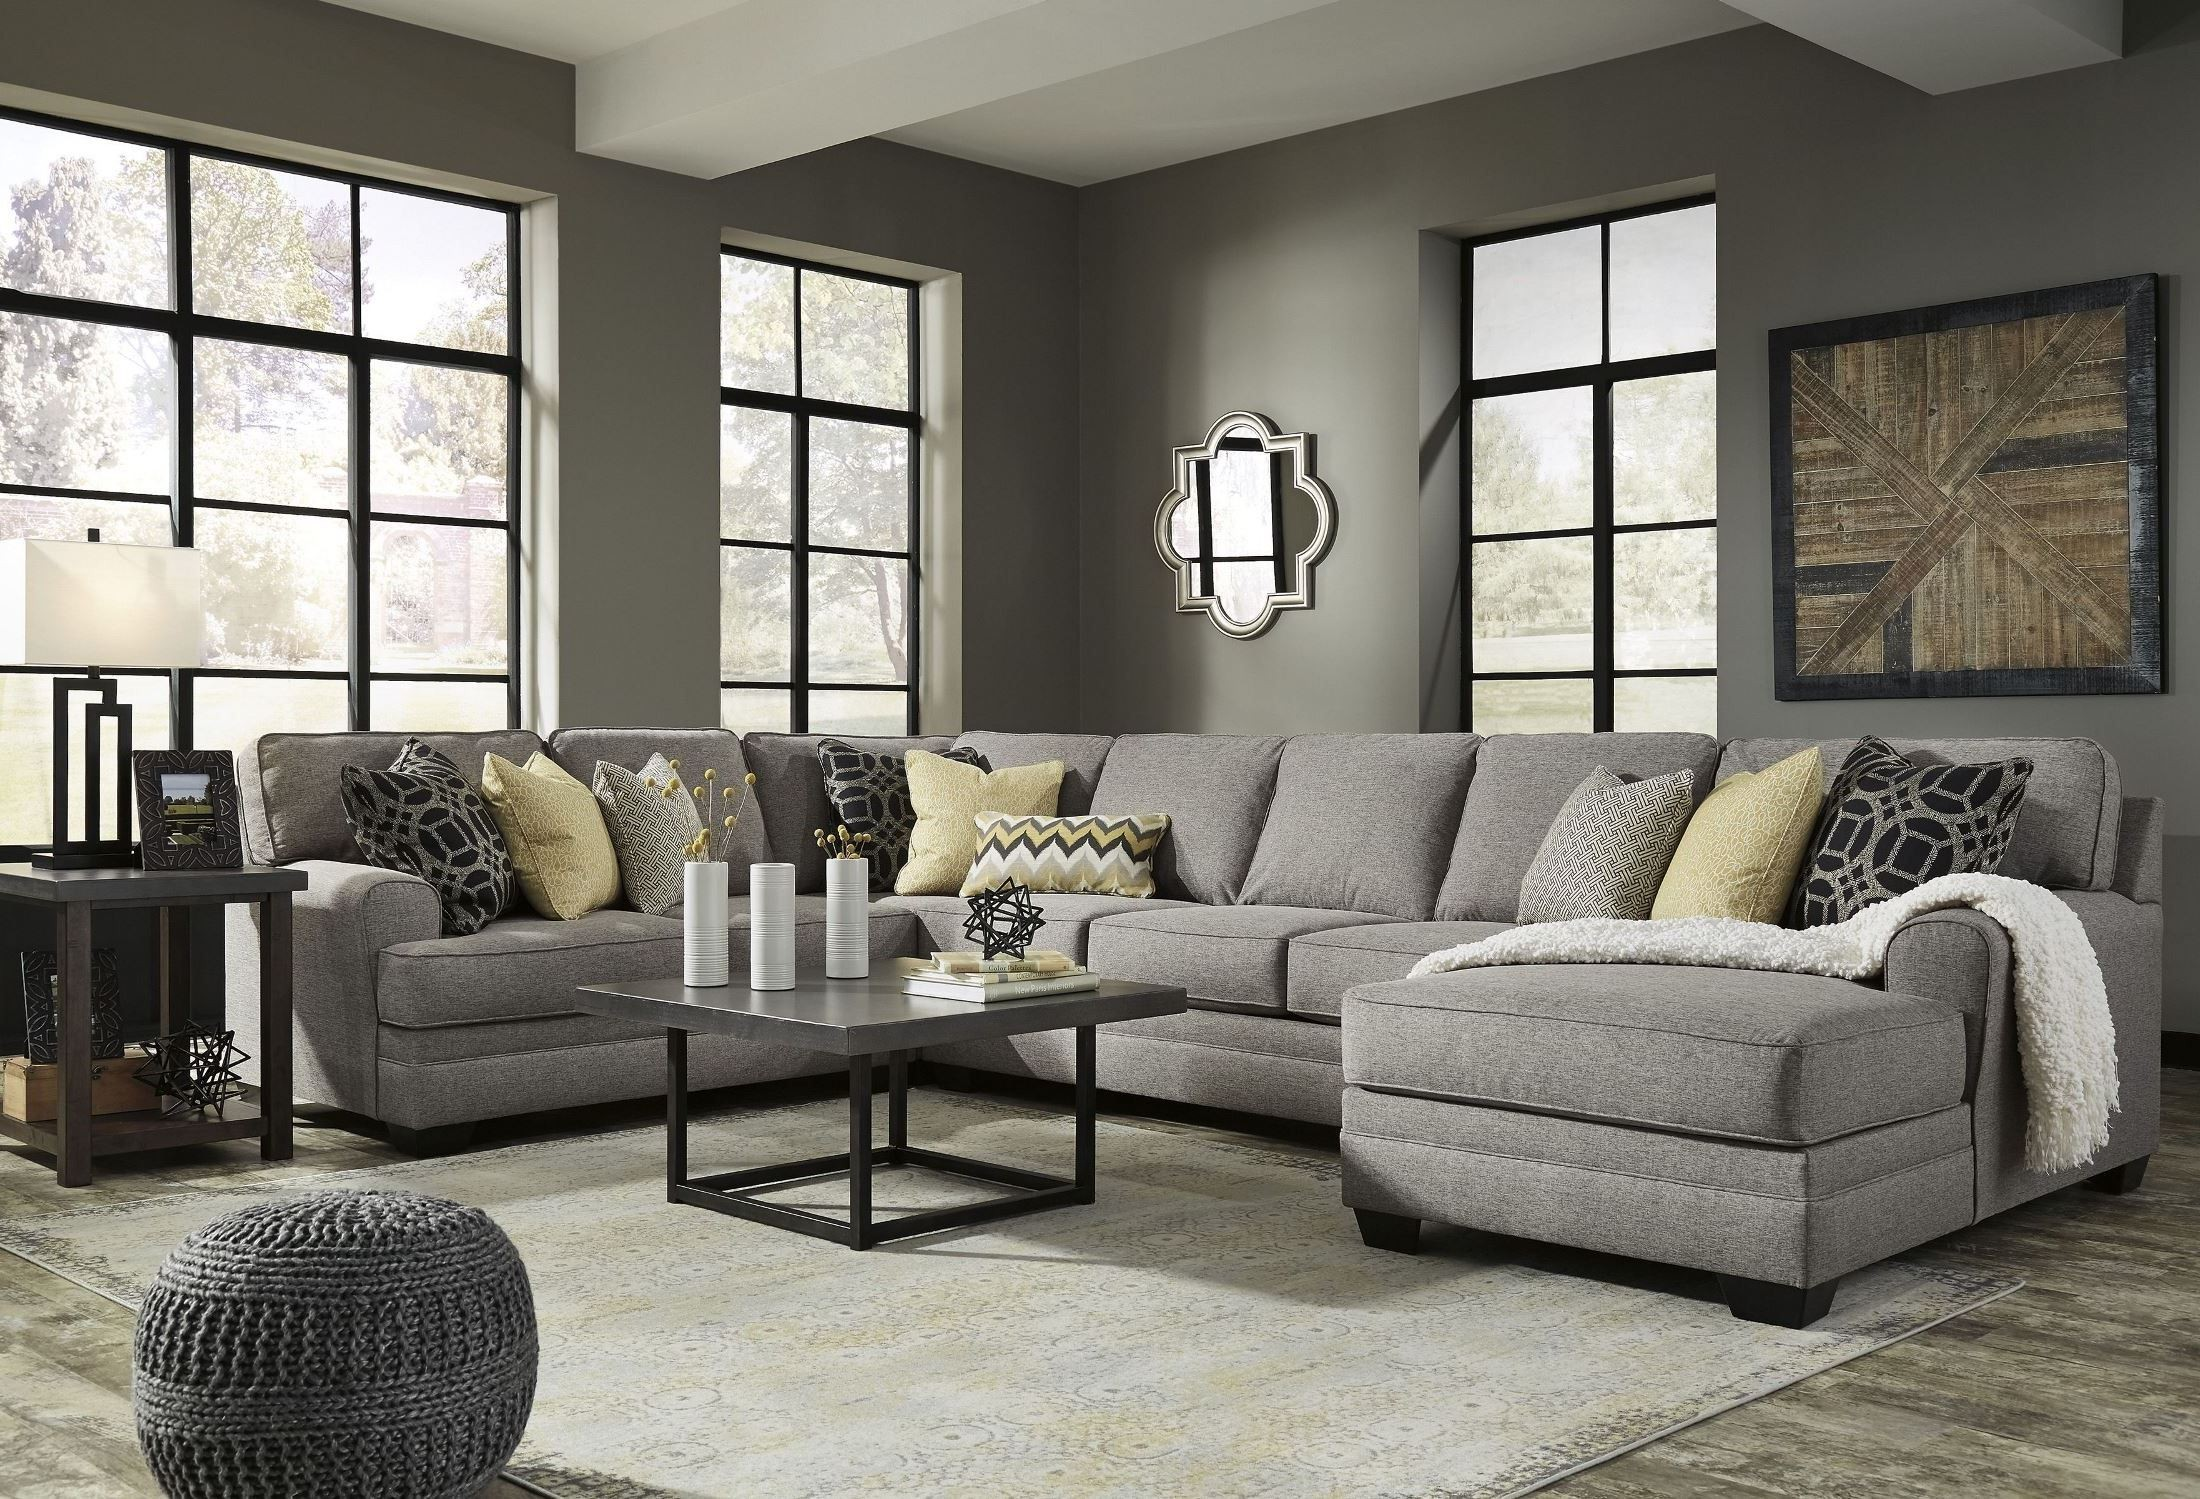 Cresson Pewter Raf Large Chaise Sectional 54907 Sec3 Ashley